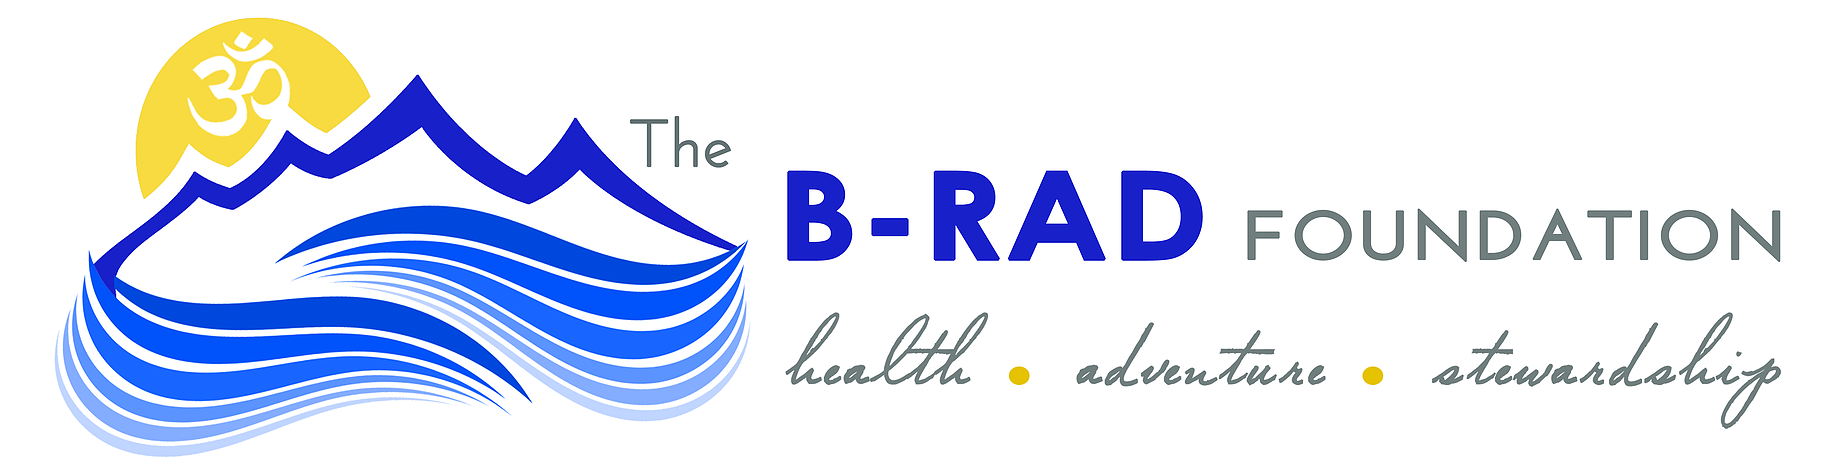 The B-Rad Foundation